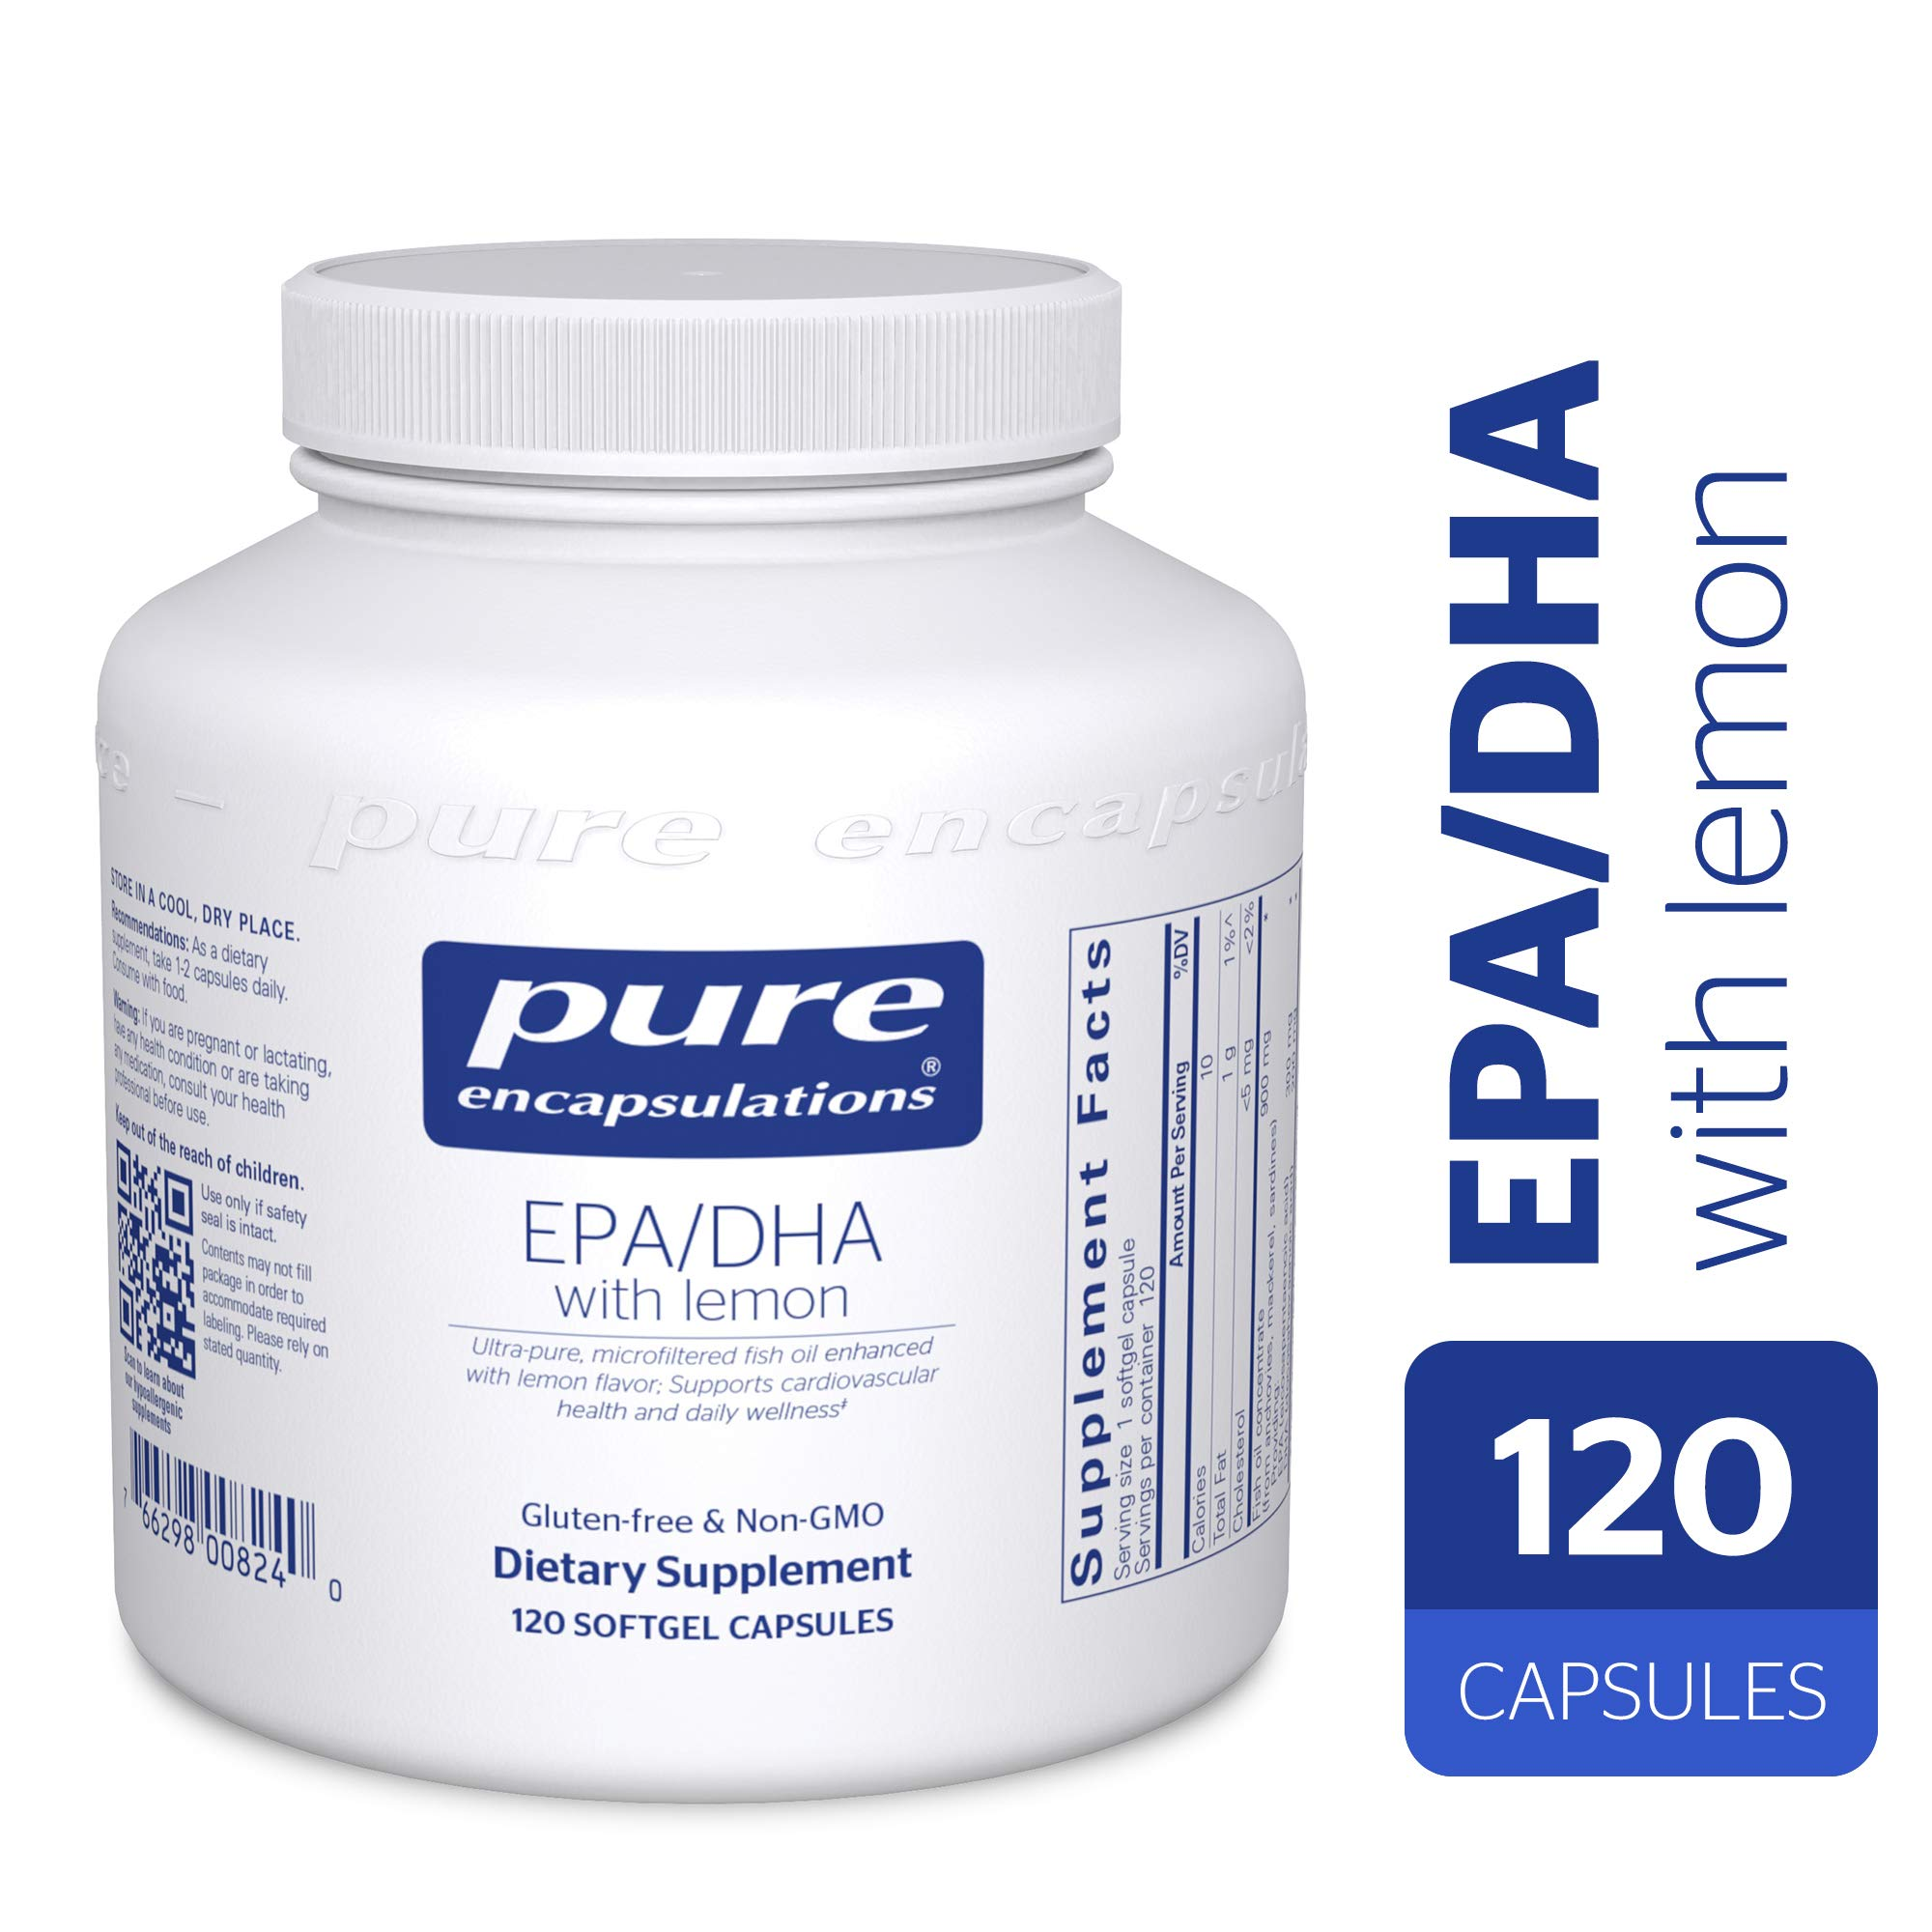 Pure Encapsulations - EPA/DHA with Lemon - Ultra-Pure, Molecularly Distilled Fish Oil Concentrate with Lemon - 120 Softgel Capsules by Pure Encapsulations